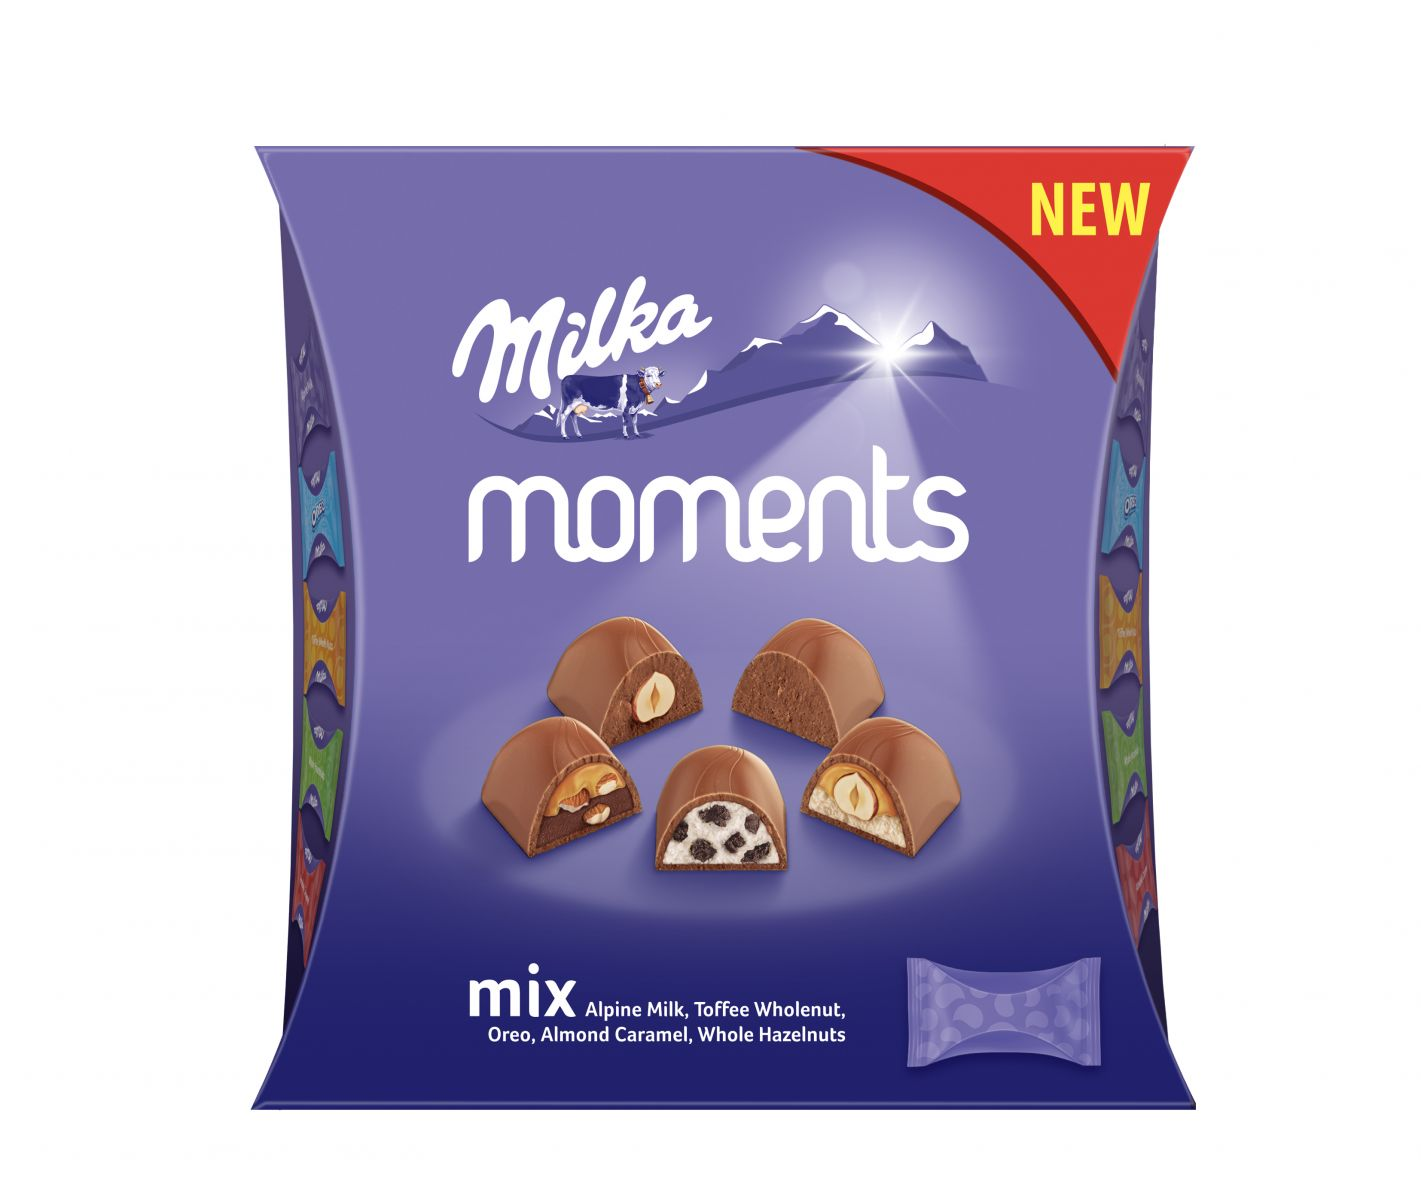 Milka_Moments_MIX_300dpi_front